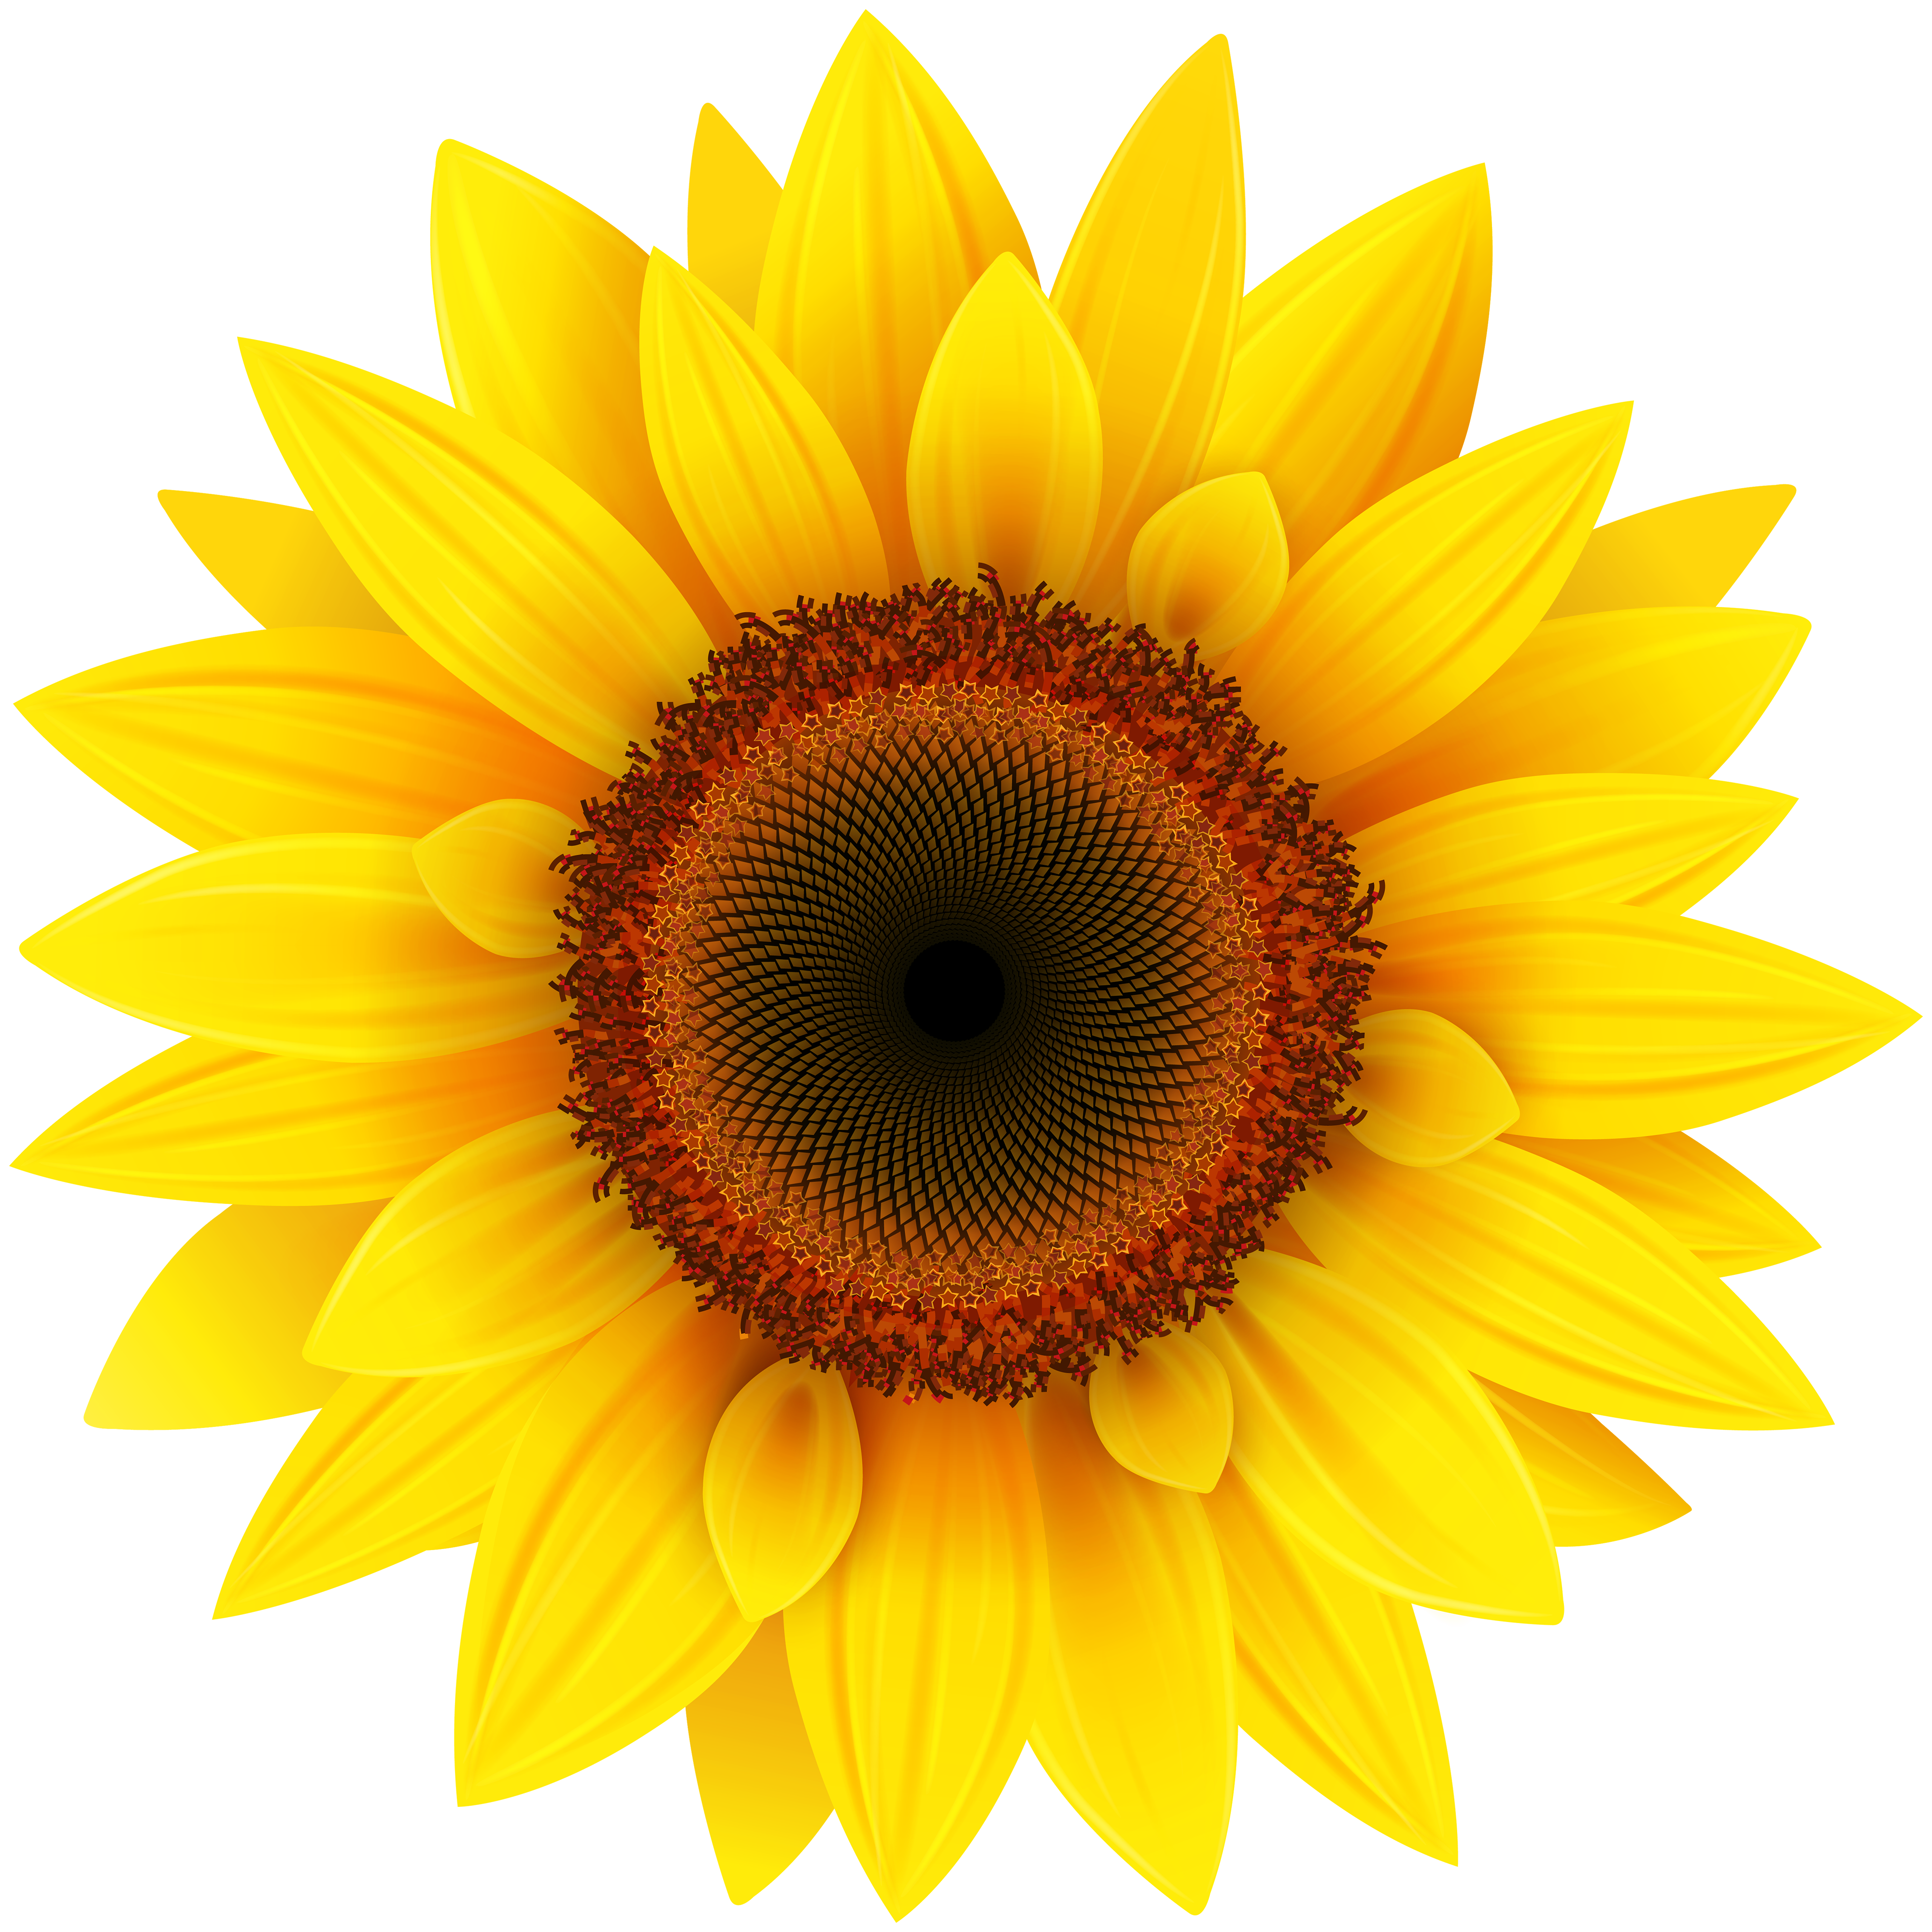 Sun flower png. Sunflower clipart picture gallery